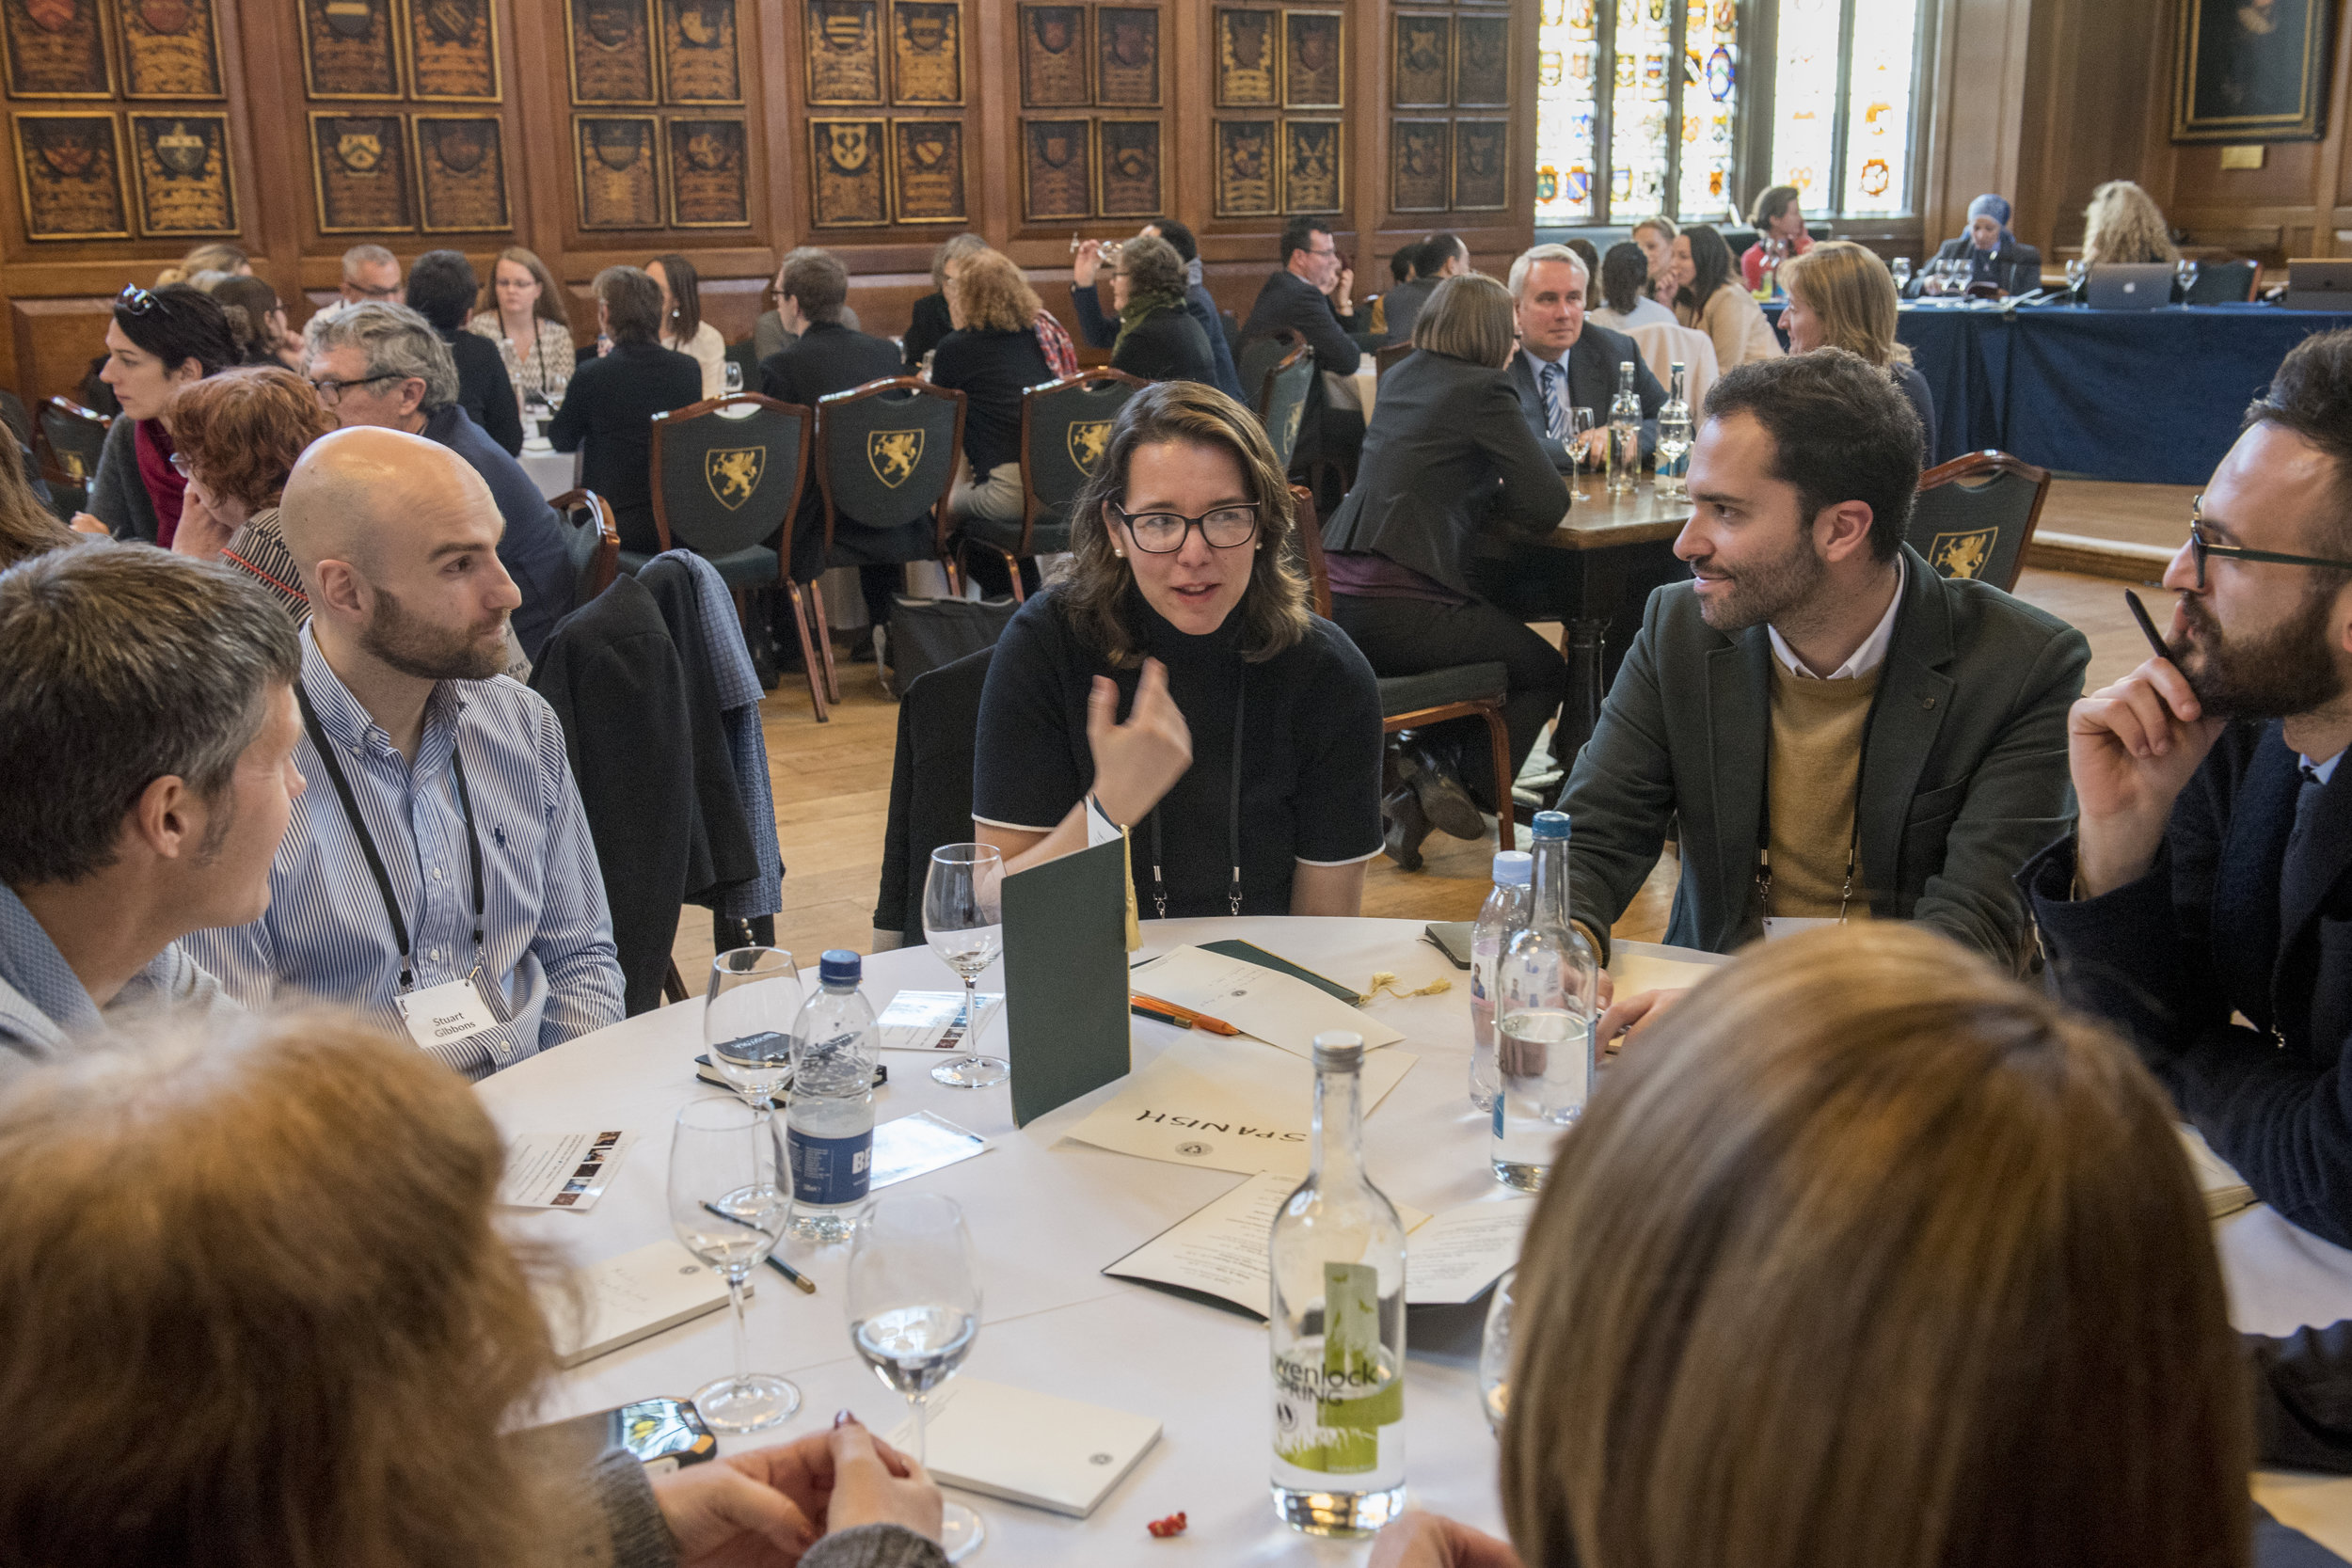 Table Workshops - Each table will address a key theme for the profession - chosen by the delegates themselves.